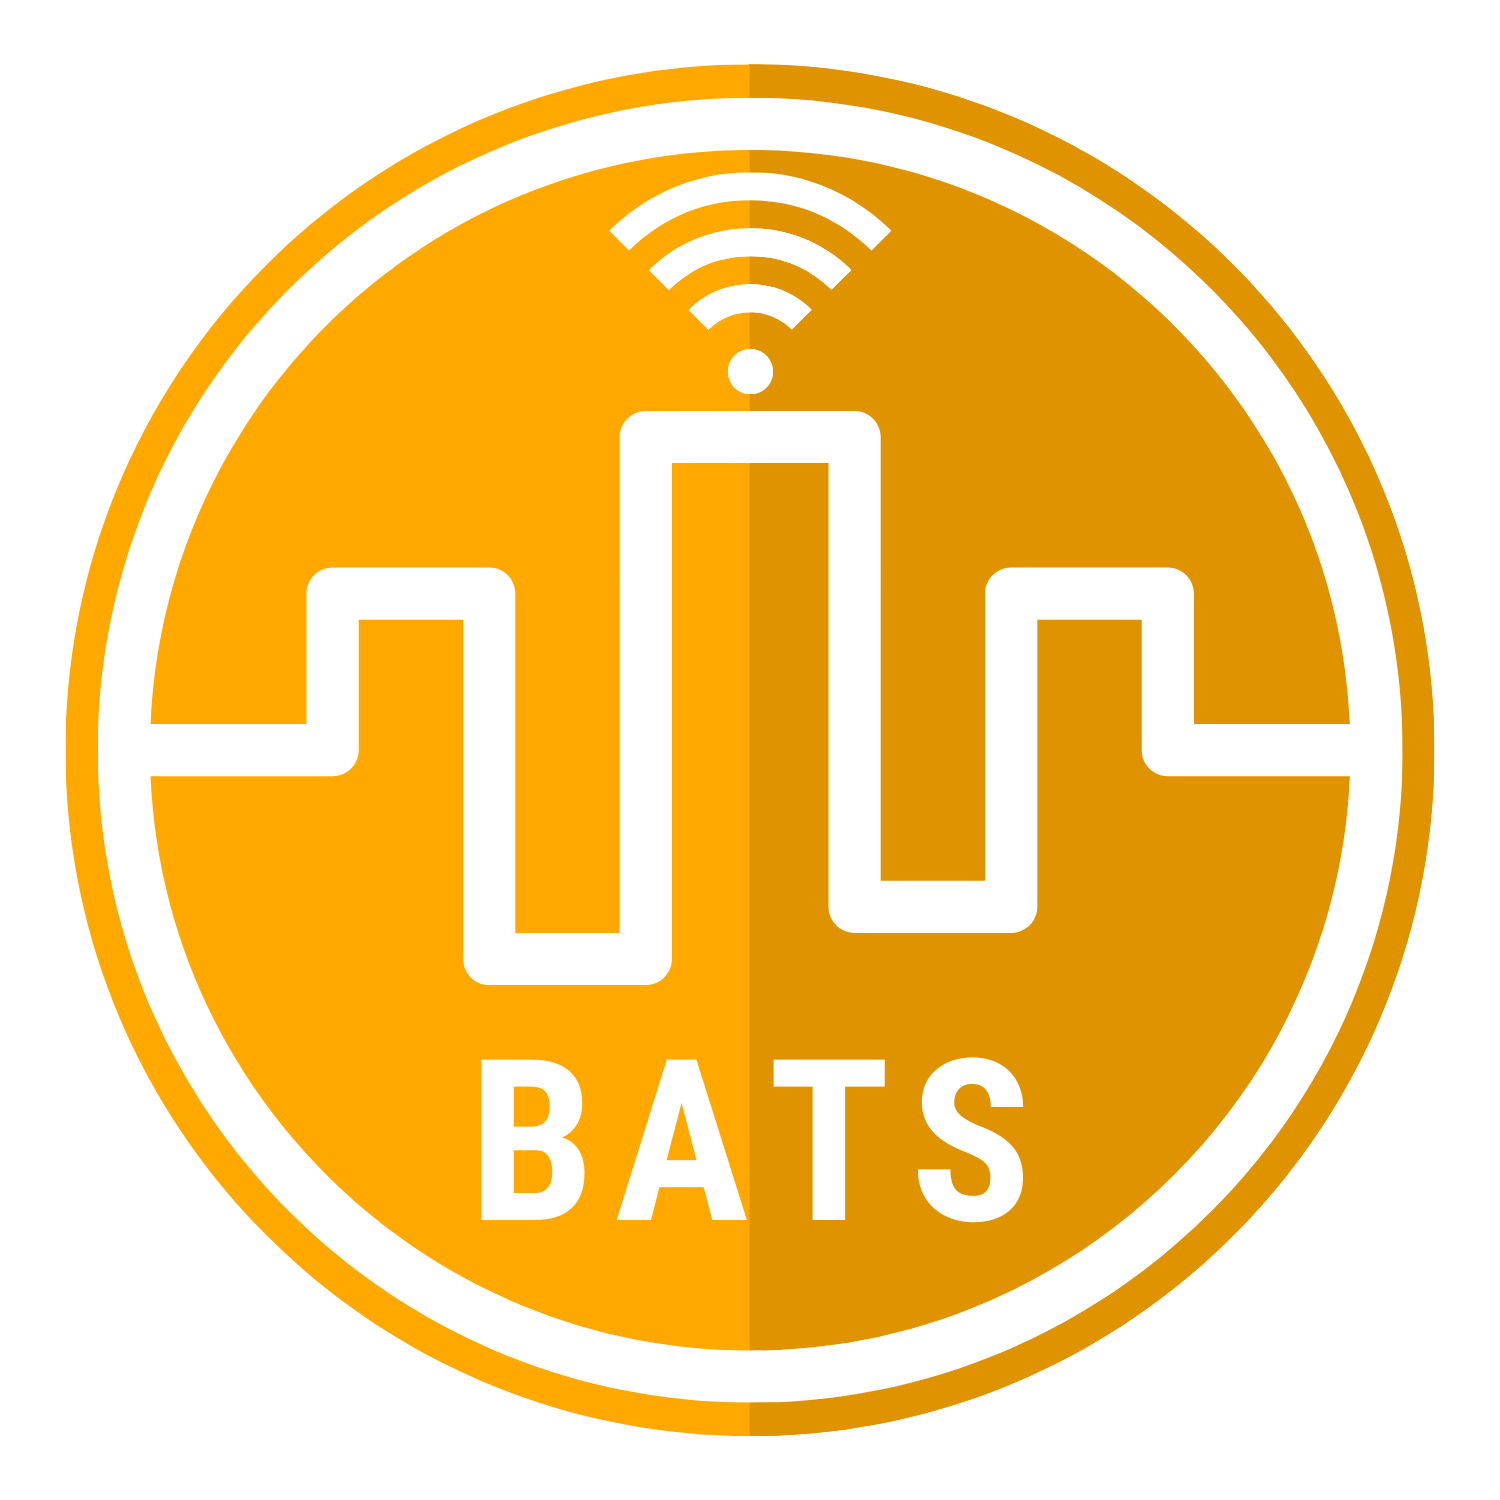 BATS Website Design and Technology Analytics